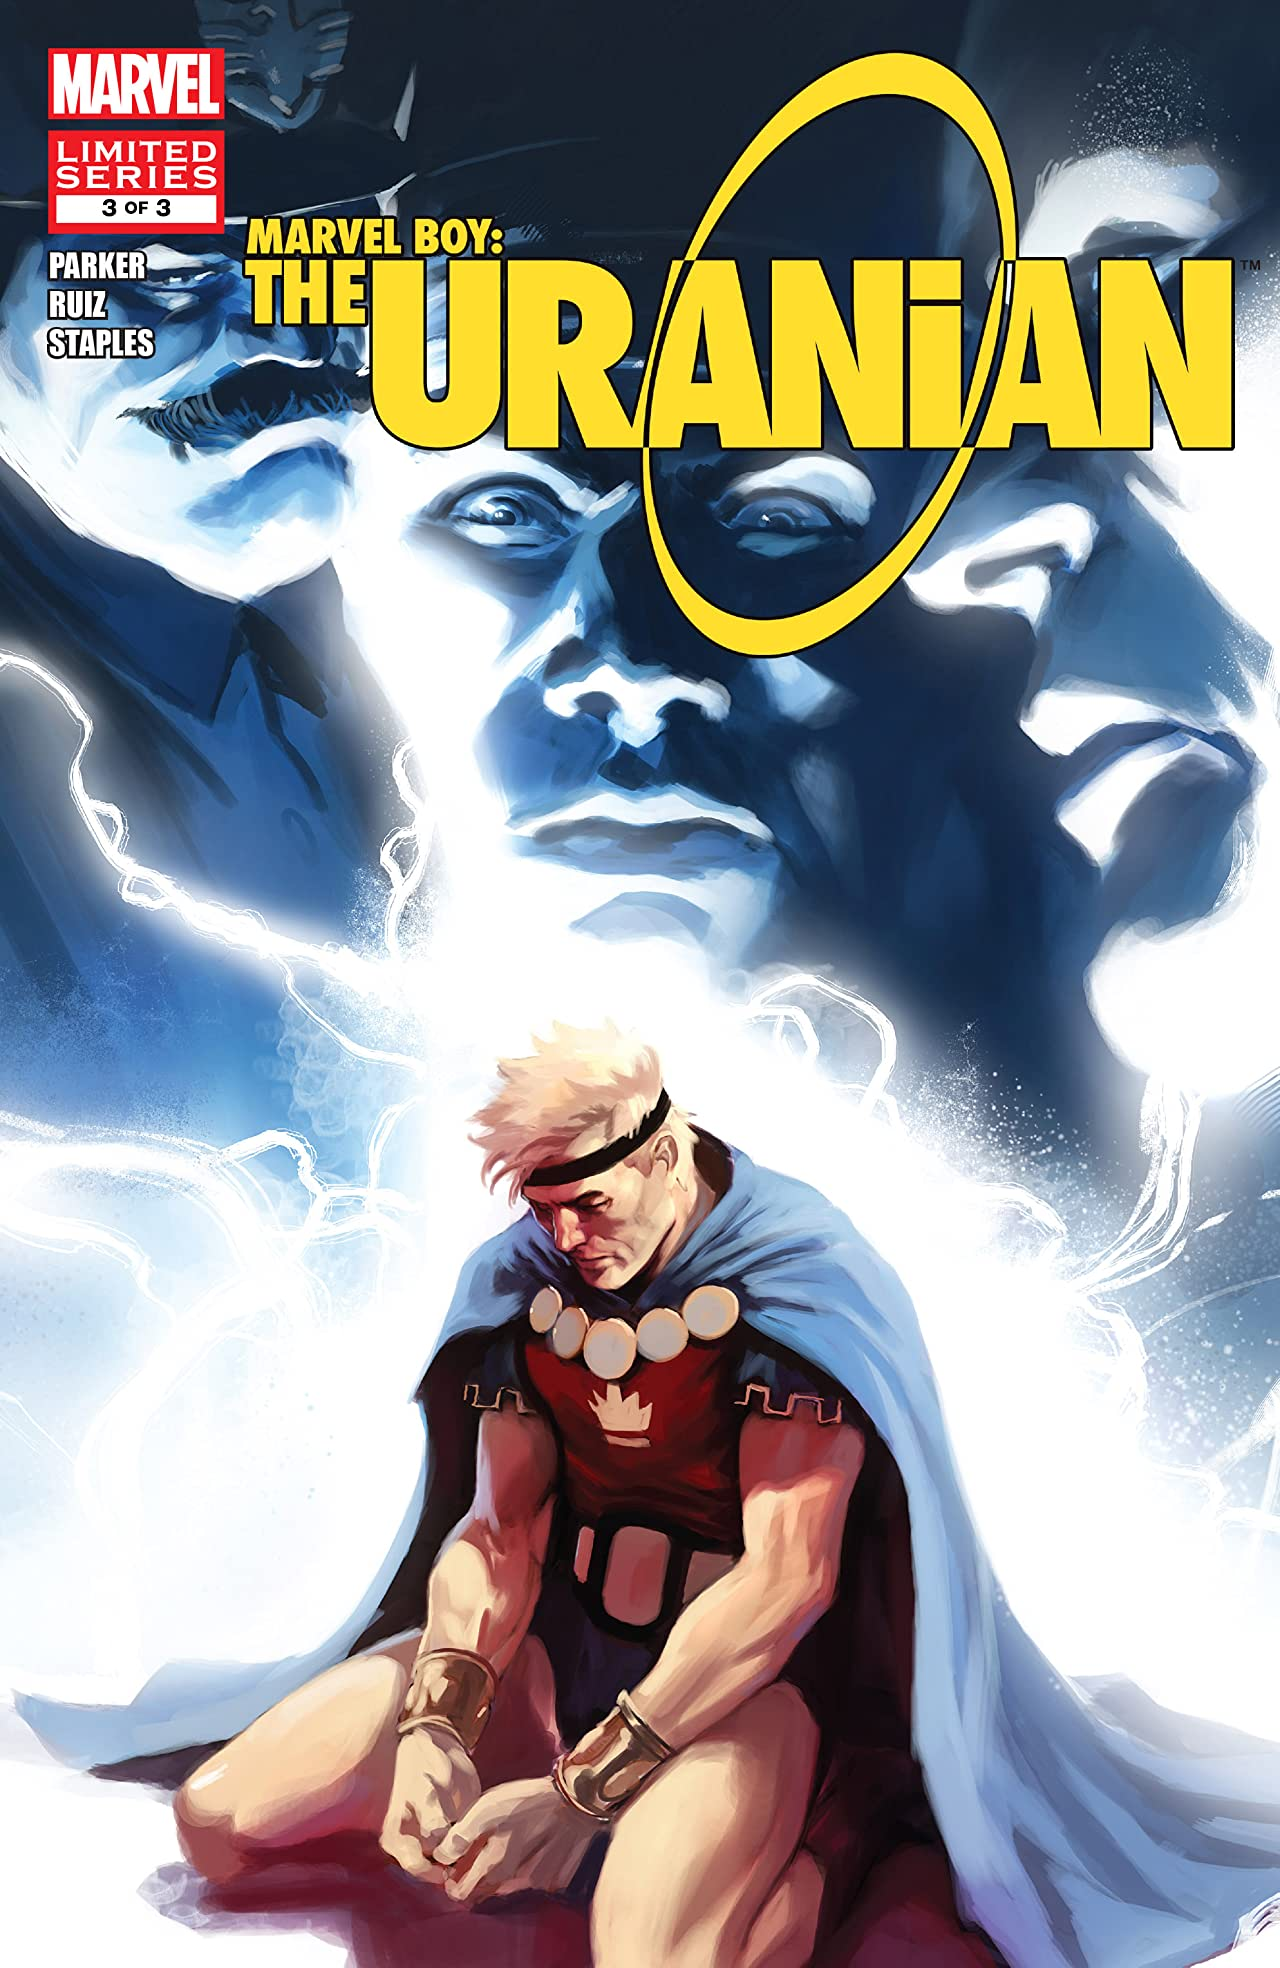 Marvel Boy: The Uranian (2010) #3 (of 3)